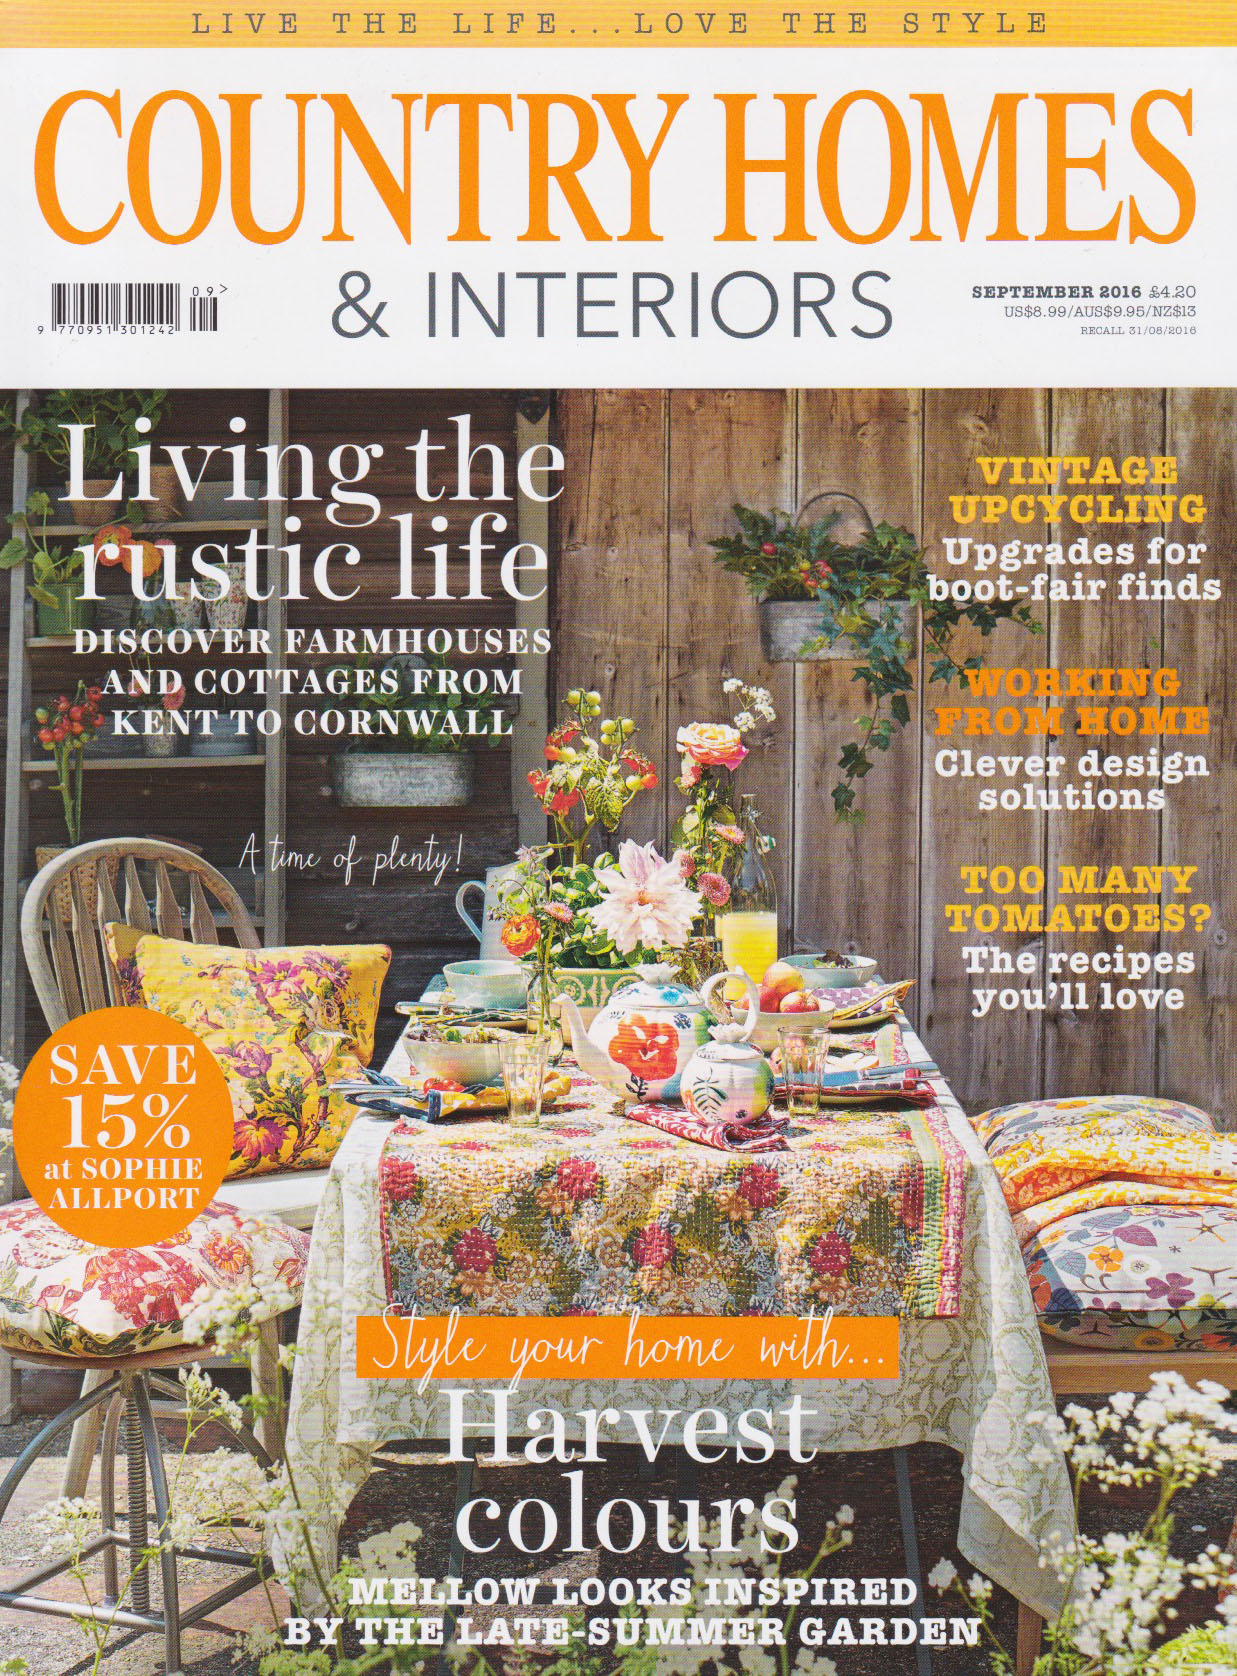 Country Homes And Interiors country homes & interiors september 2016 - sorbus saffron - nile